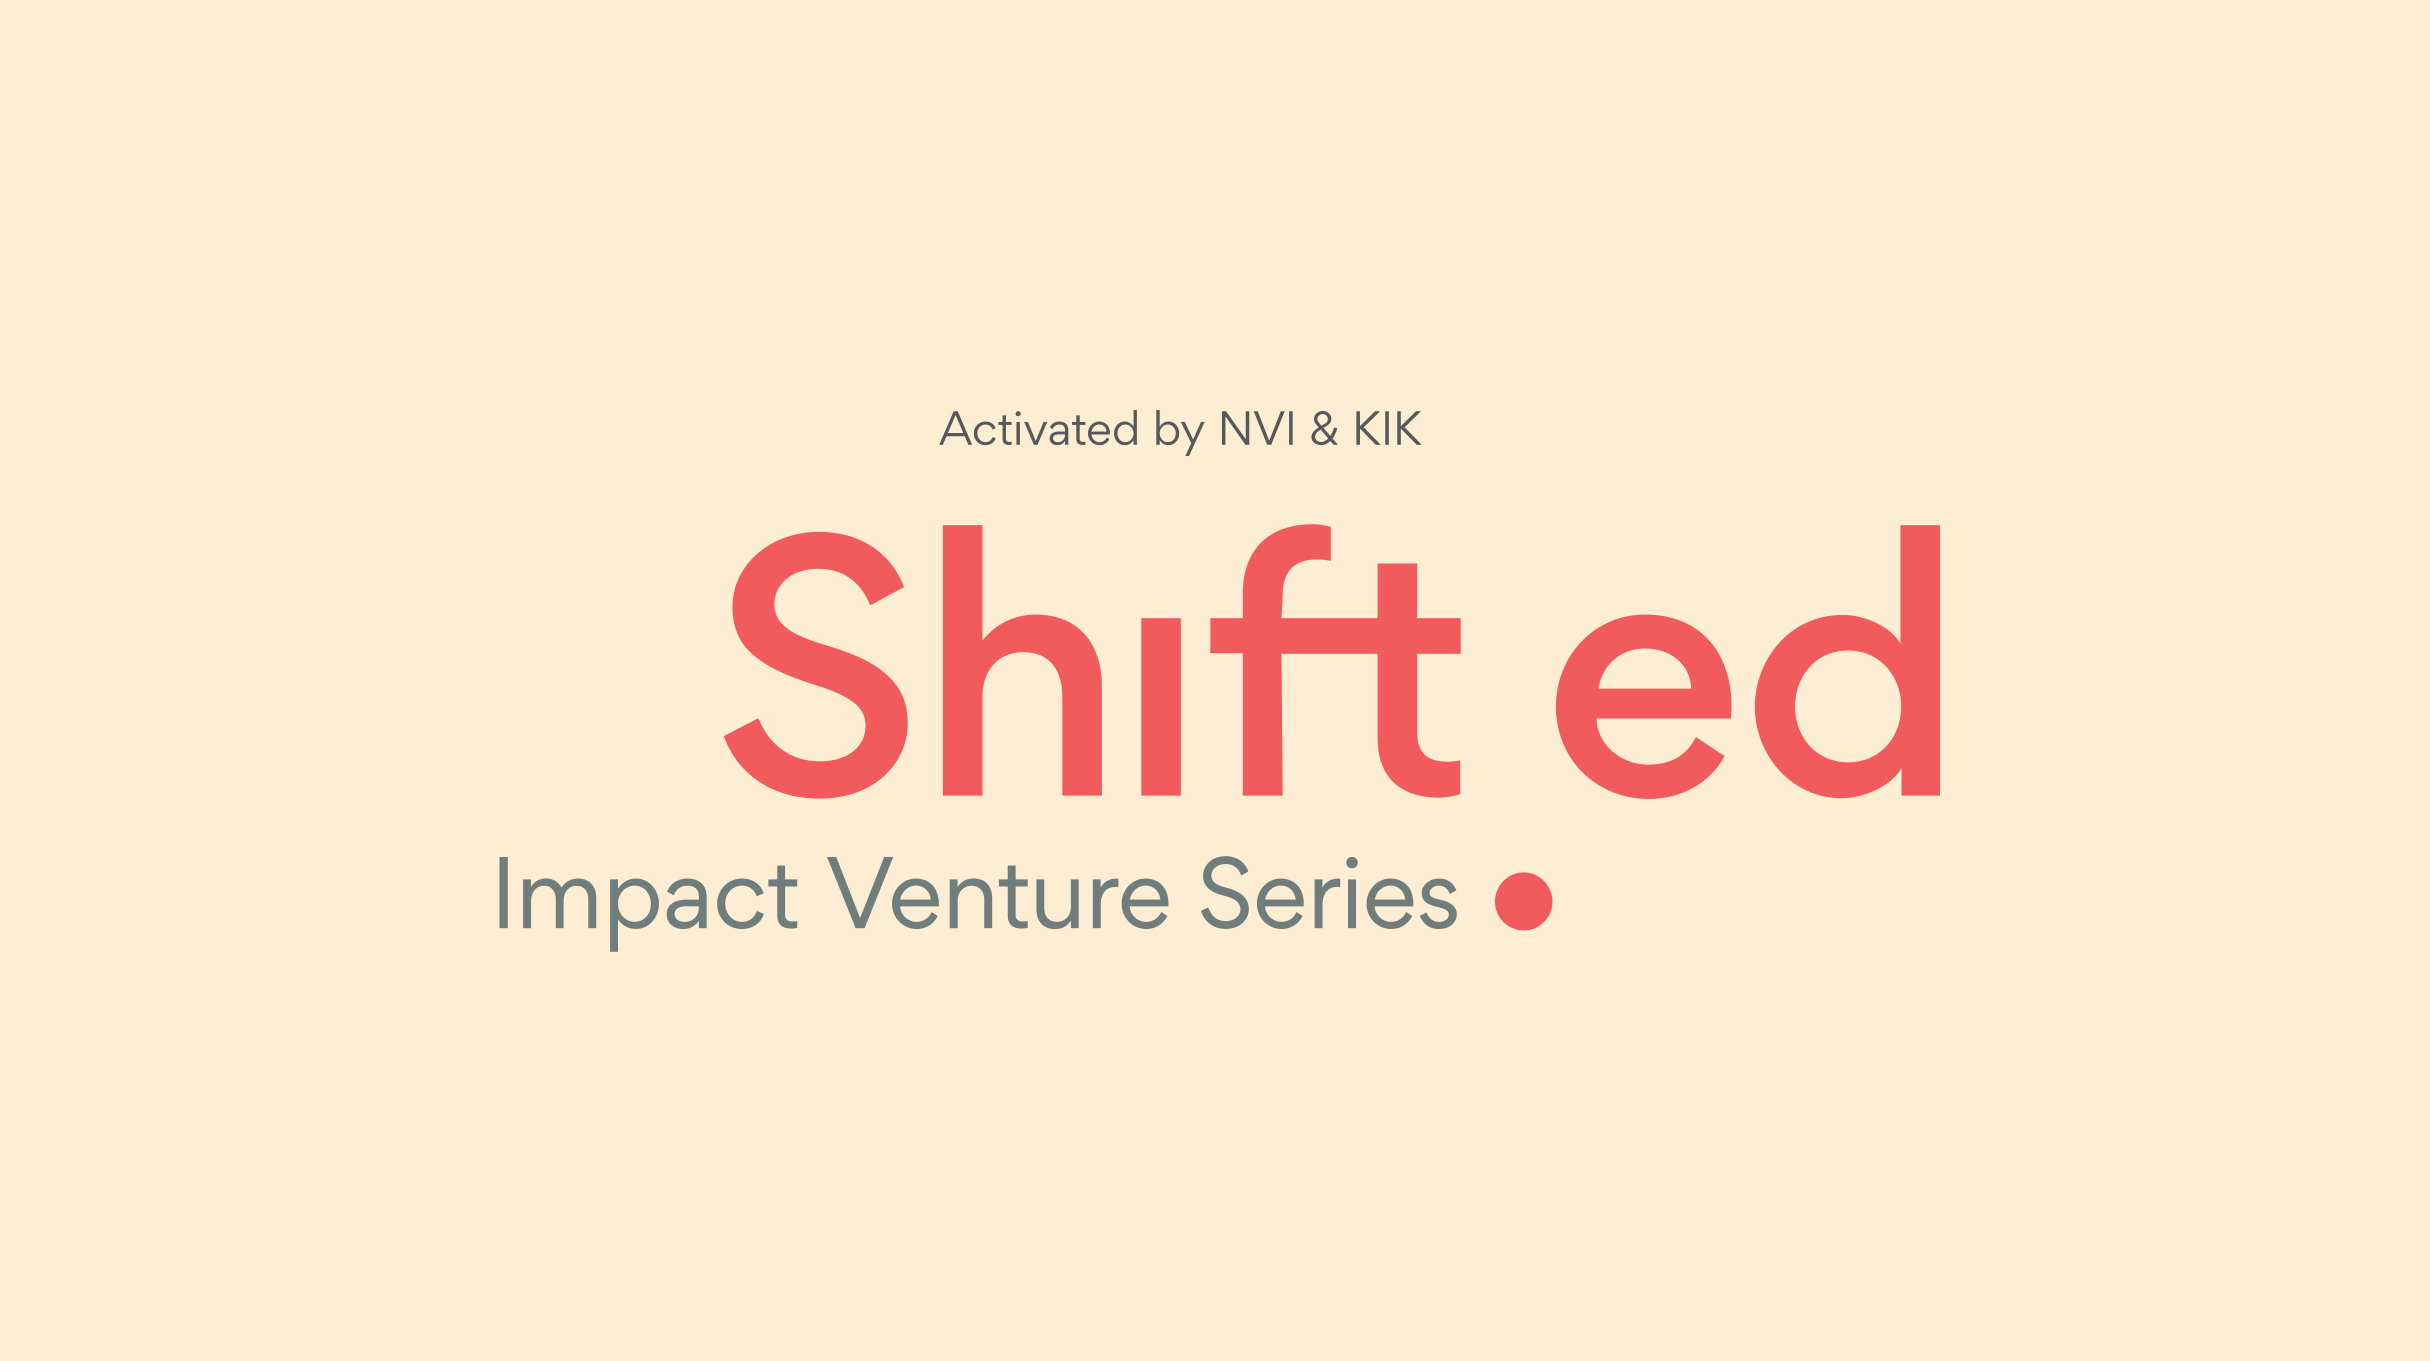 Logo: Shift.ed, Impact venture Series. Activated by NVI & KIK